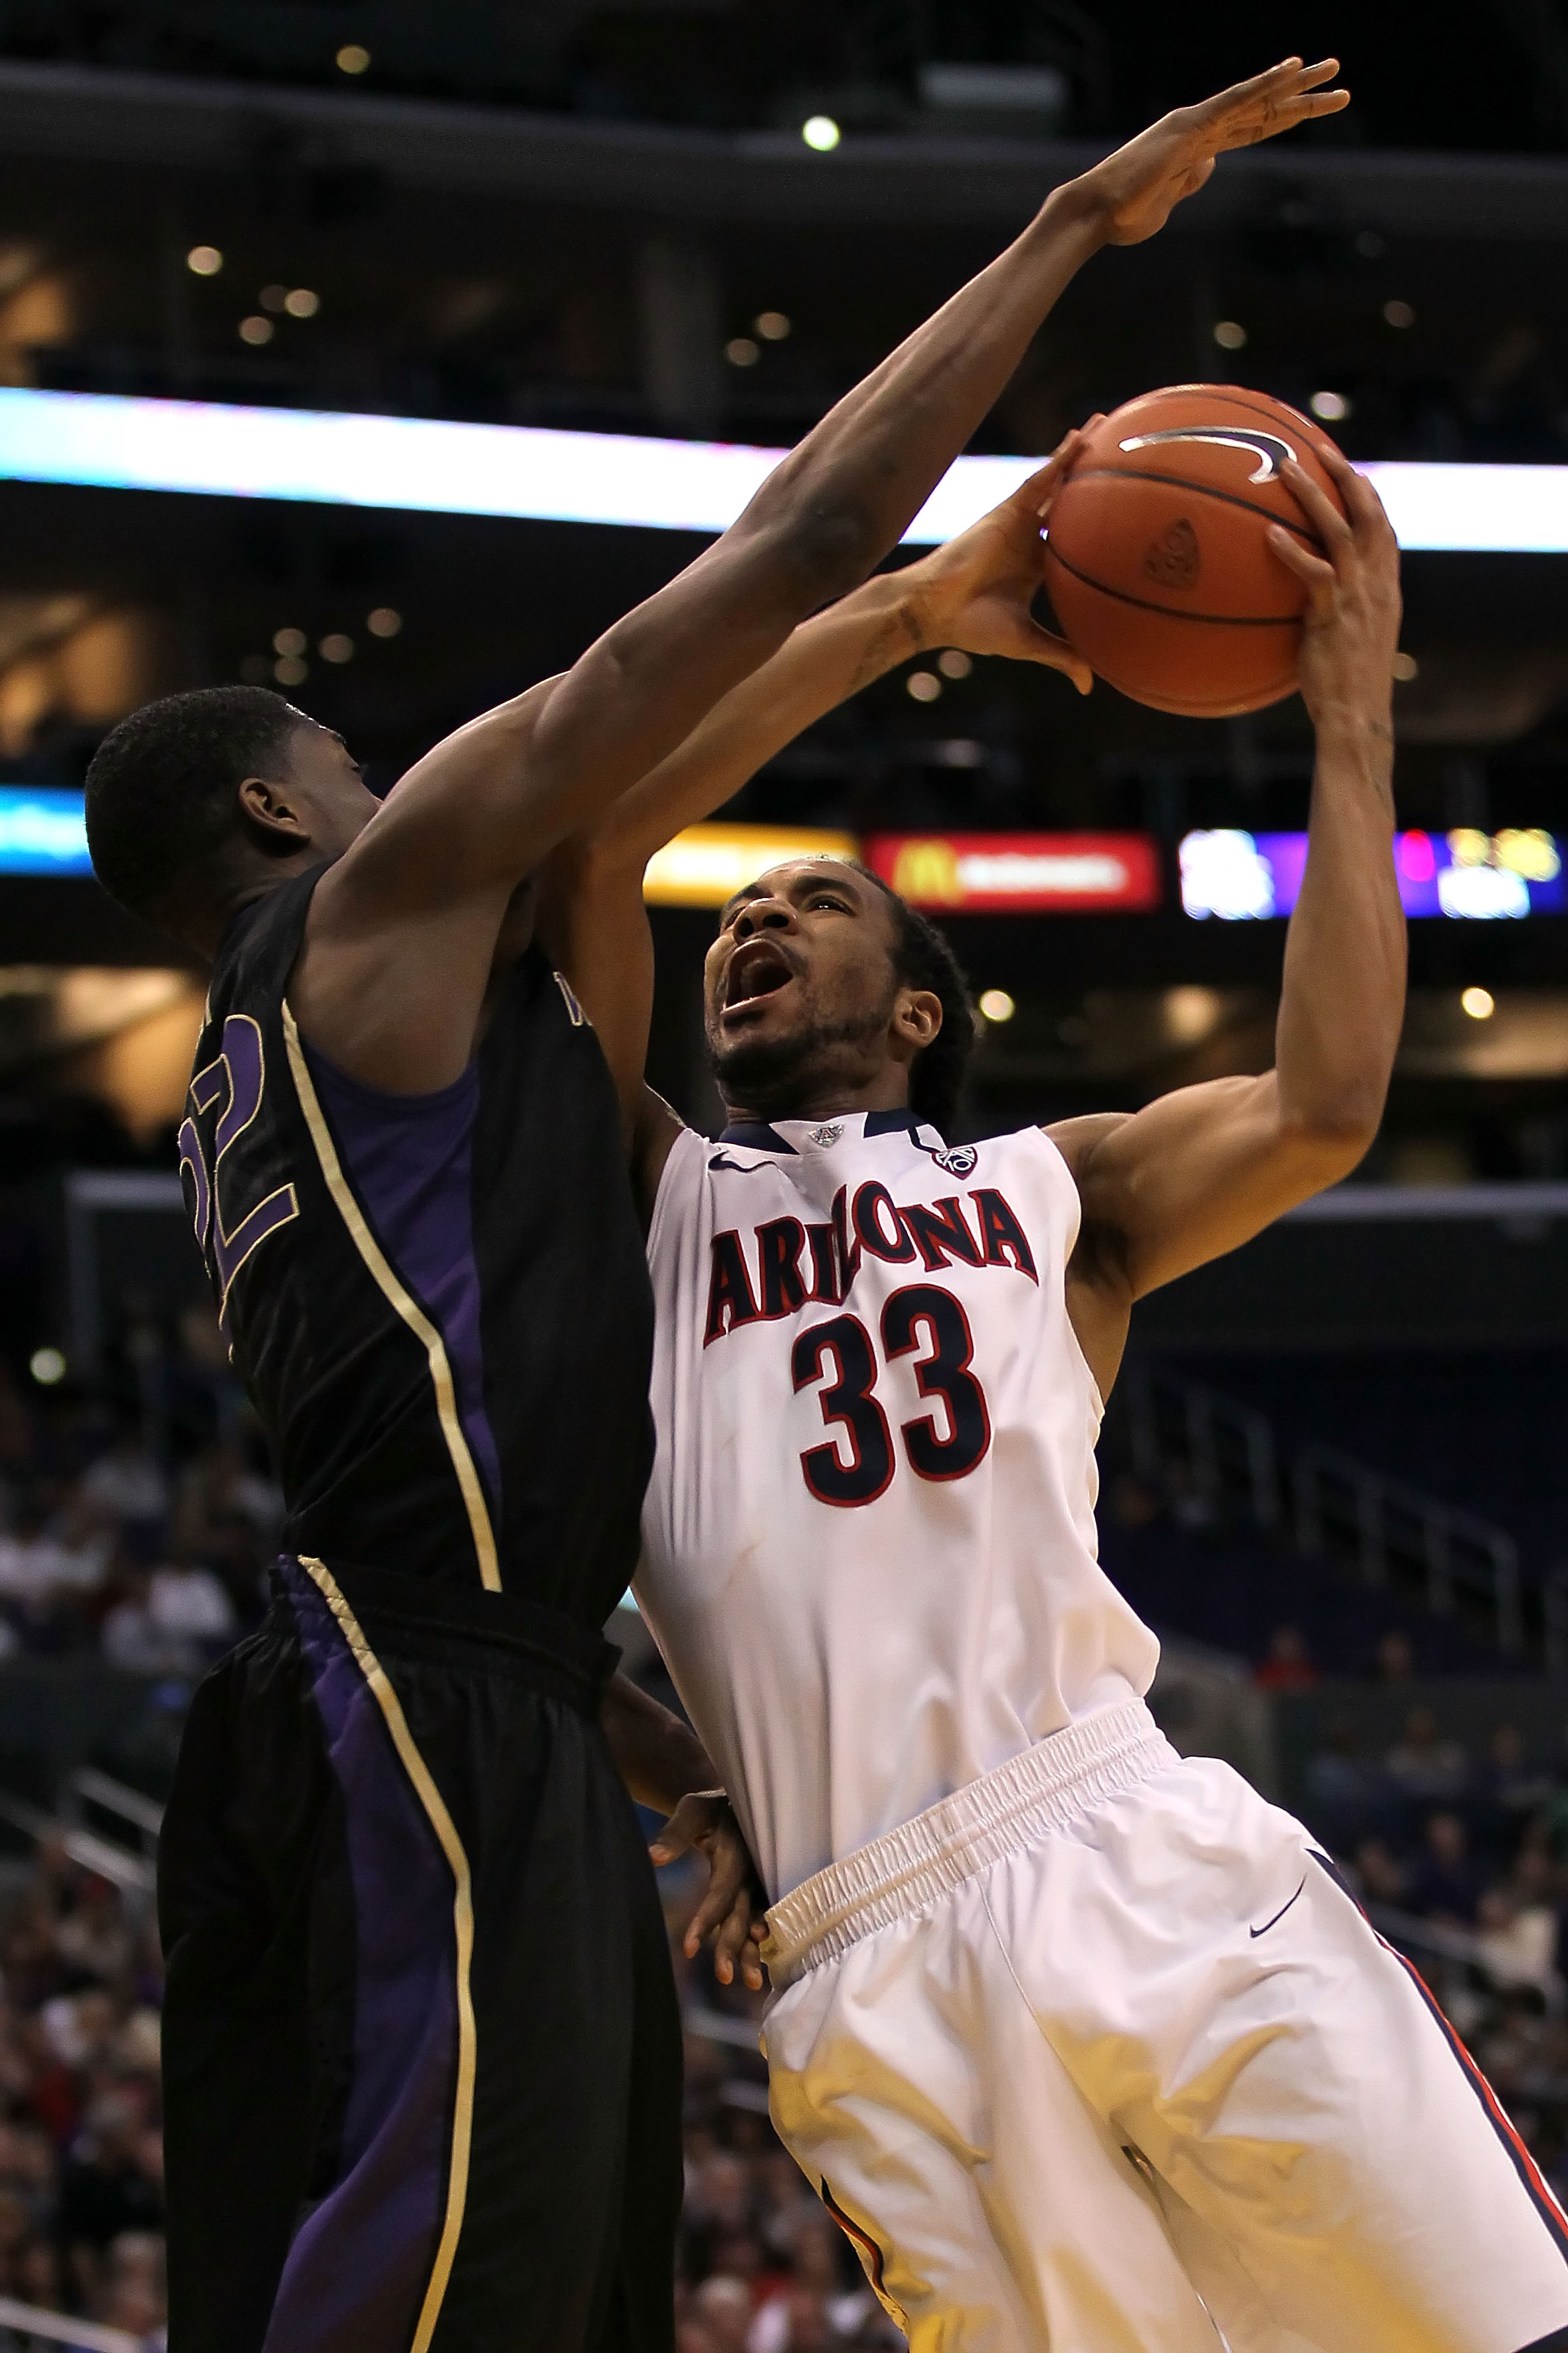 LOS ANGELES, CA - MARCH 12:  Jesse Perry #33 of the Arizona Wildcats shoots over Justin Holiday #22 of the Washington Huskies in the second half in the championship game of the 2011 Pacific Life Pac-10 Men's Basketball Tournament at Staples Center on Marc